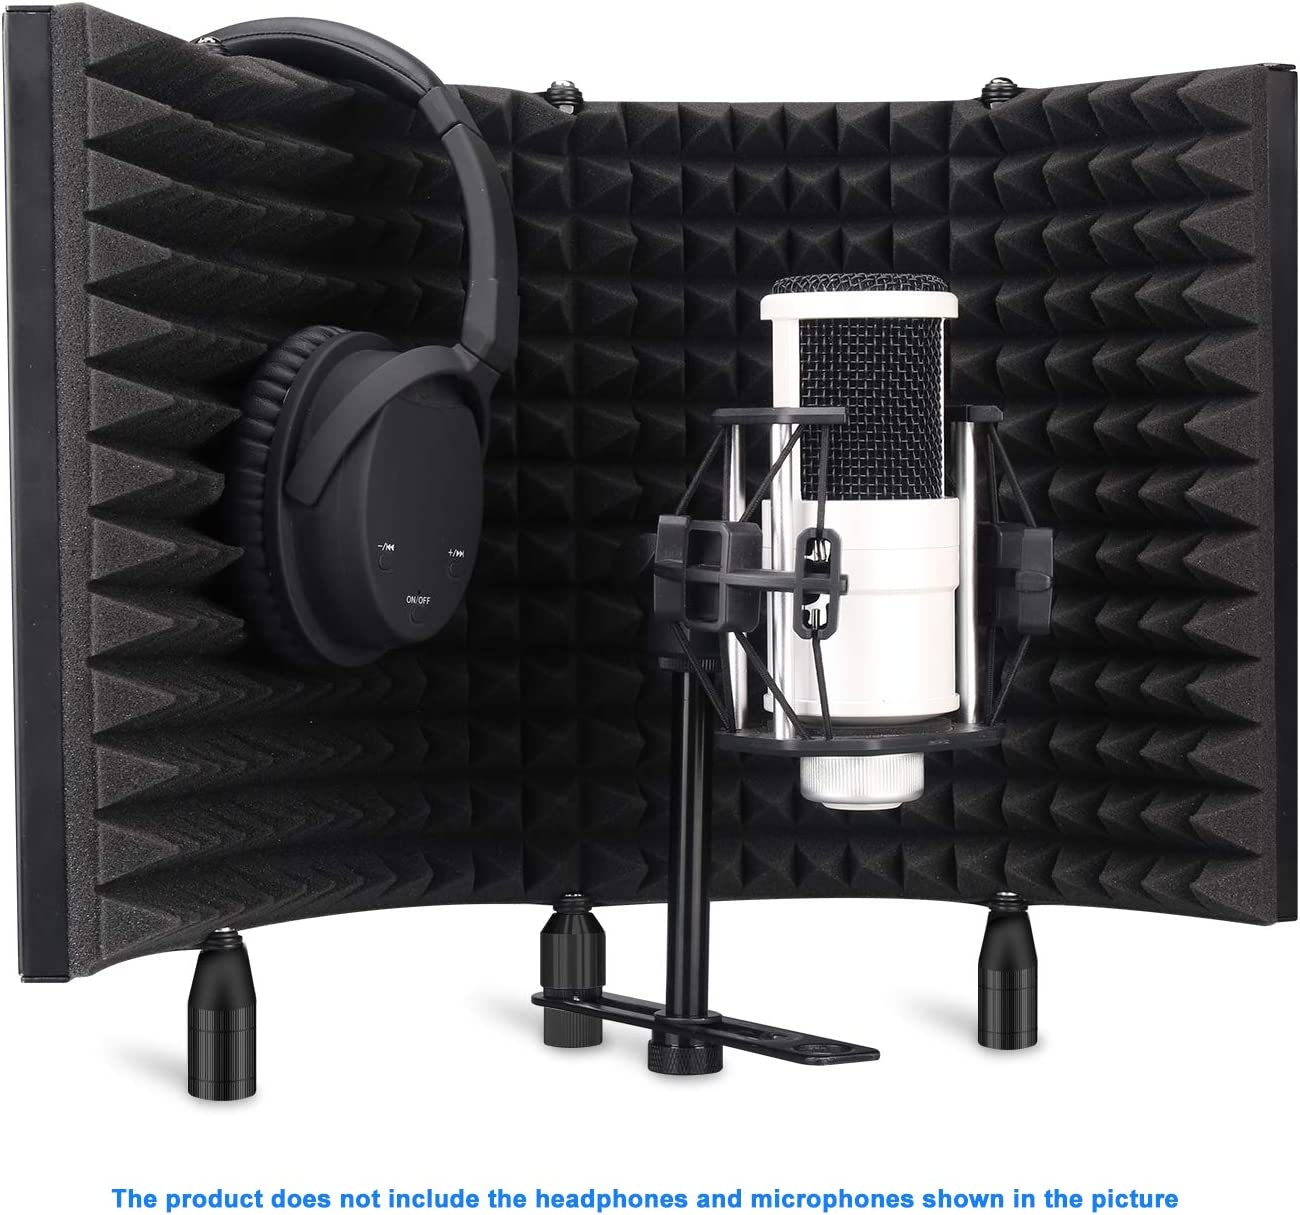 Aokeo Professional Studio Recording Microphone Isolation Shield, Pop Filter.High density absorbent foam is used to filter vocal. Suitable for blue yeti and any condenser microphone recording equipment 71nuEo8j6UL